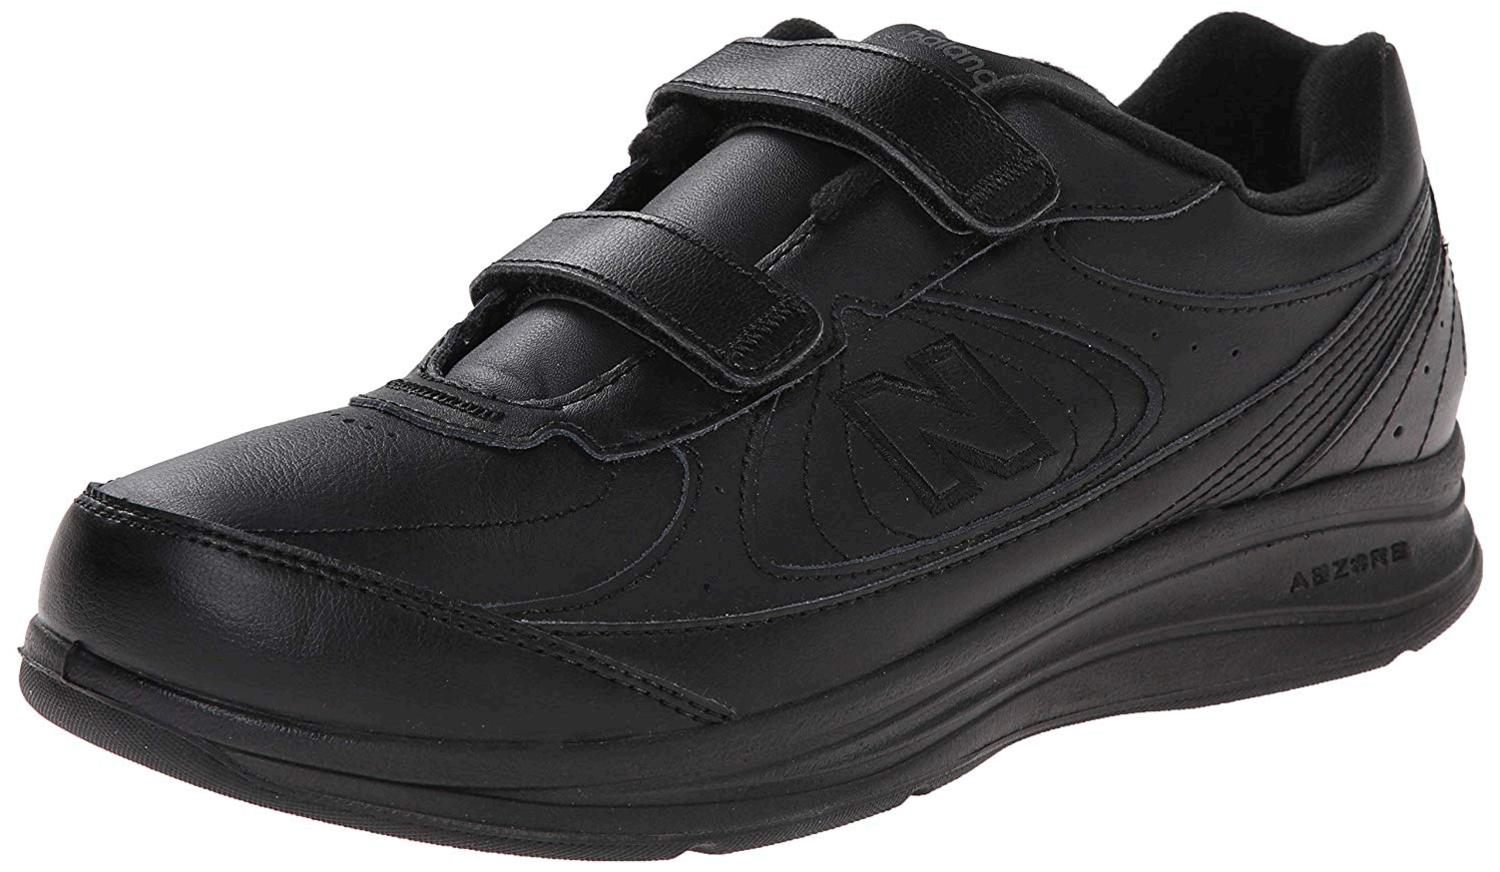 Details about New Balance Mens MW577 Leather Low Top Lace Up Walking Shoes, Black, Size 11.5 h